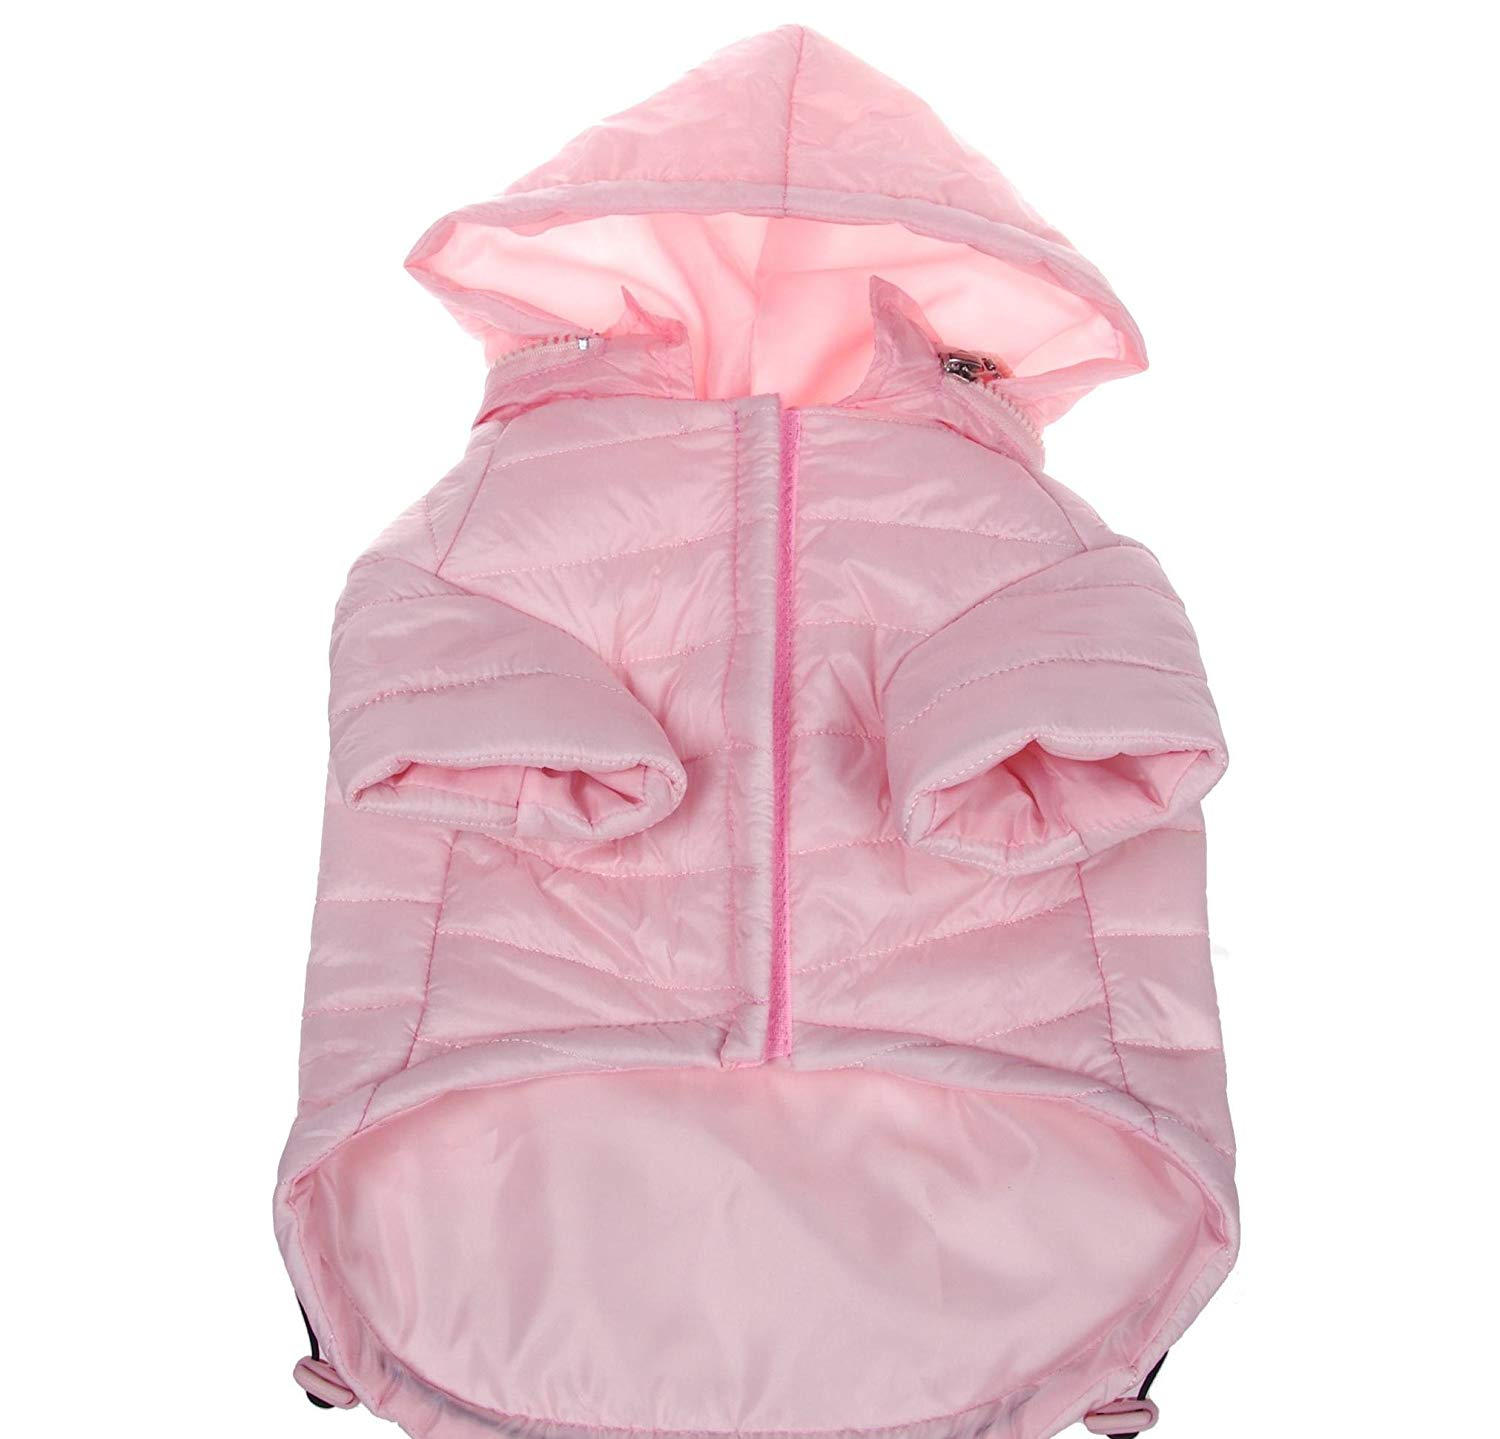 22 Inches X-large Pink Comfortable Tail End Adjustable Pet Coat, Light Pink Solid Color Leash Slit Holder Belly Hook Loop Closure Stylish Hood Waterproof Lightweight Jacket Pet Apparel, Polyester